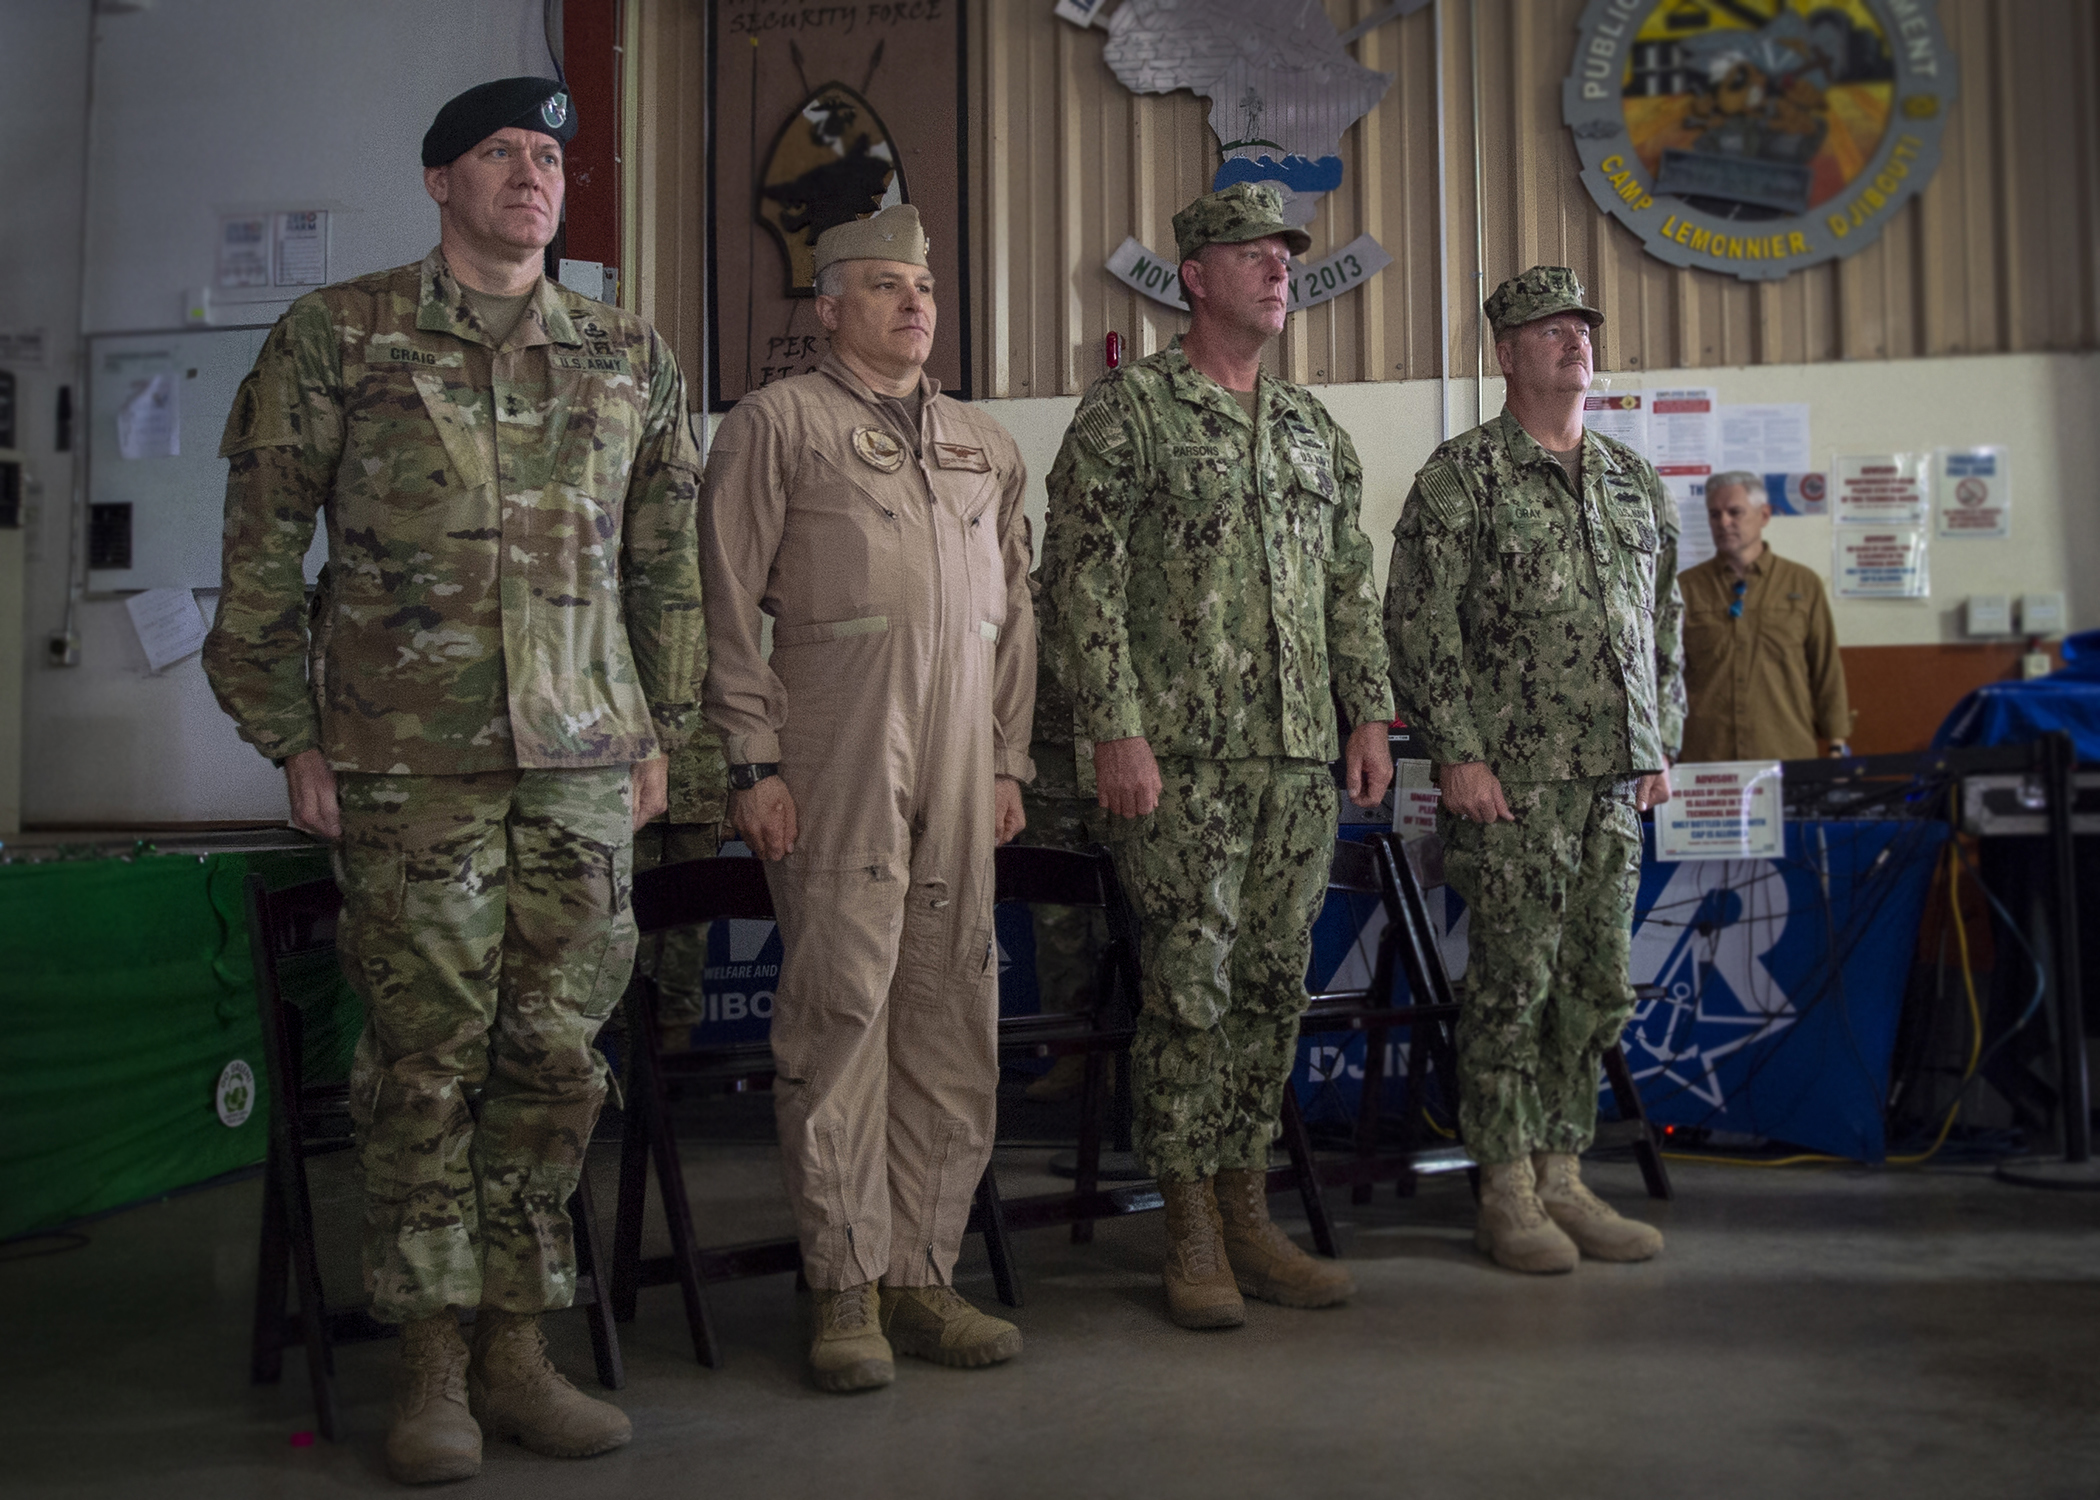 Left to right, U.S. Army Maj. Gen. James D. Craig, commanding general, Combined Joint Task Force-Horn of Africa (CJTF-HOA); U.S. Navy Capt. Charles J. DeGilio, commanding officer, Camp Lemonnier, Djibouti; U.S. Navy Master Chief Petty Officer Karl W. Parsons, command senior enlisted leader, CJTF-HOA; and U.S. Navy Master Chief Petty Officer Andy L. Gray, command senior enlisted leader, Camp Lemonnier, stand at attention during a transfer of authority ceremony at Camp Lemonnier, March 15, 2019. U.S. Army Soldiers from 2nd Battalion, 113th Infantry Regiment, Task Force Warrior, New Jersey National Guard, assumed authority of their mission at CJTF-HOA from 1st Battalion, 141st Infantry, Task Force Alamo, Texas National Guard during the ceremony. (U.S. Air Force Photo by Tech. Sgt. Shawn Nickel)